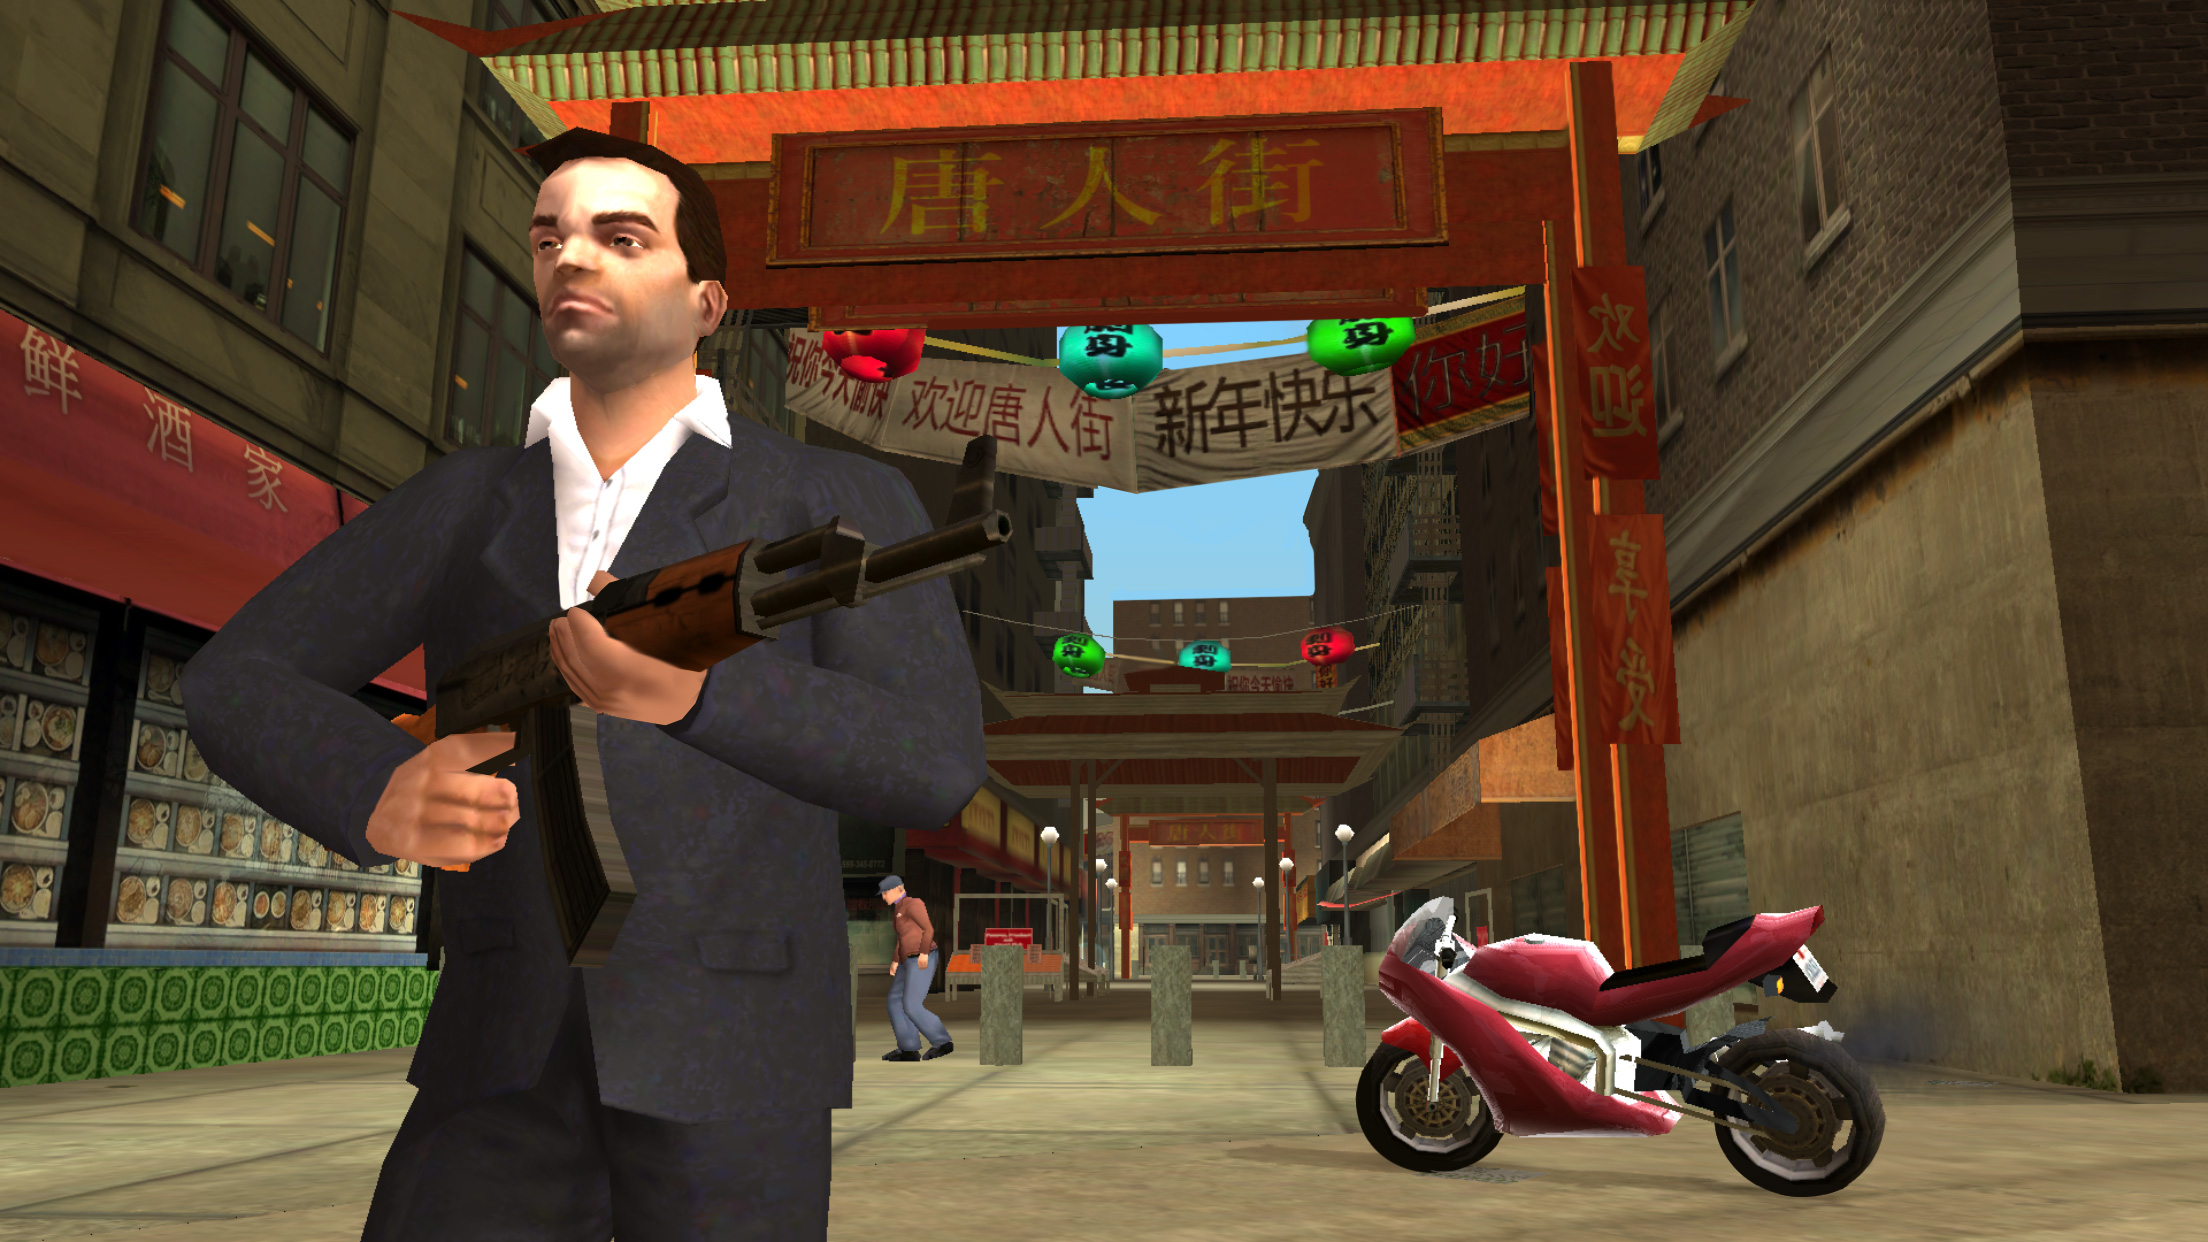 Grand Theft Auto: Liberty City Stories Backgrounds on Wallpapers Vista